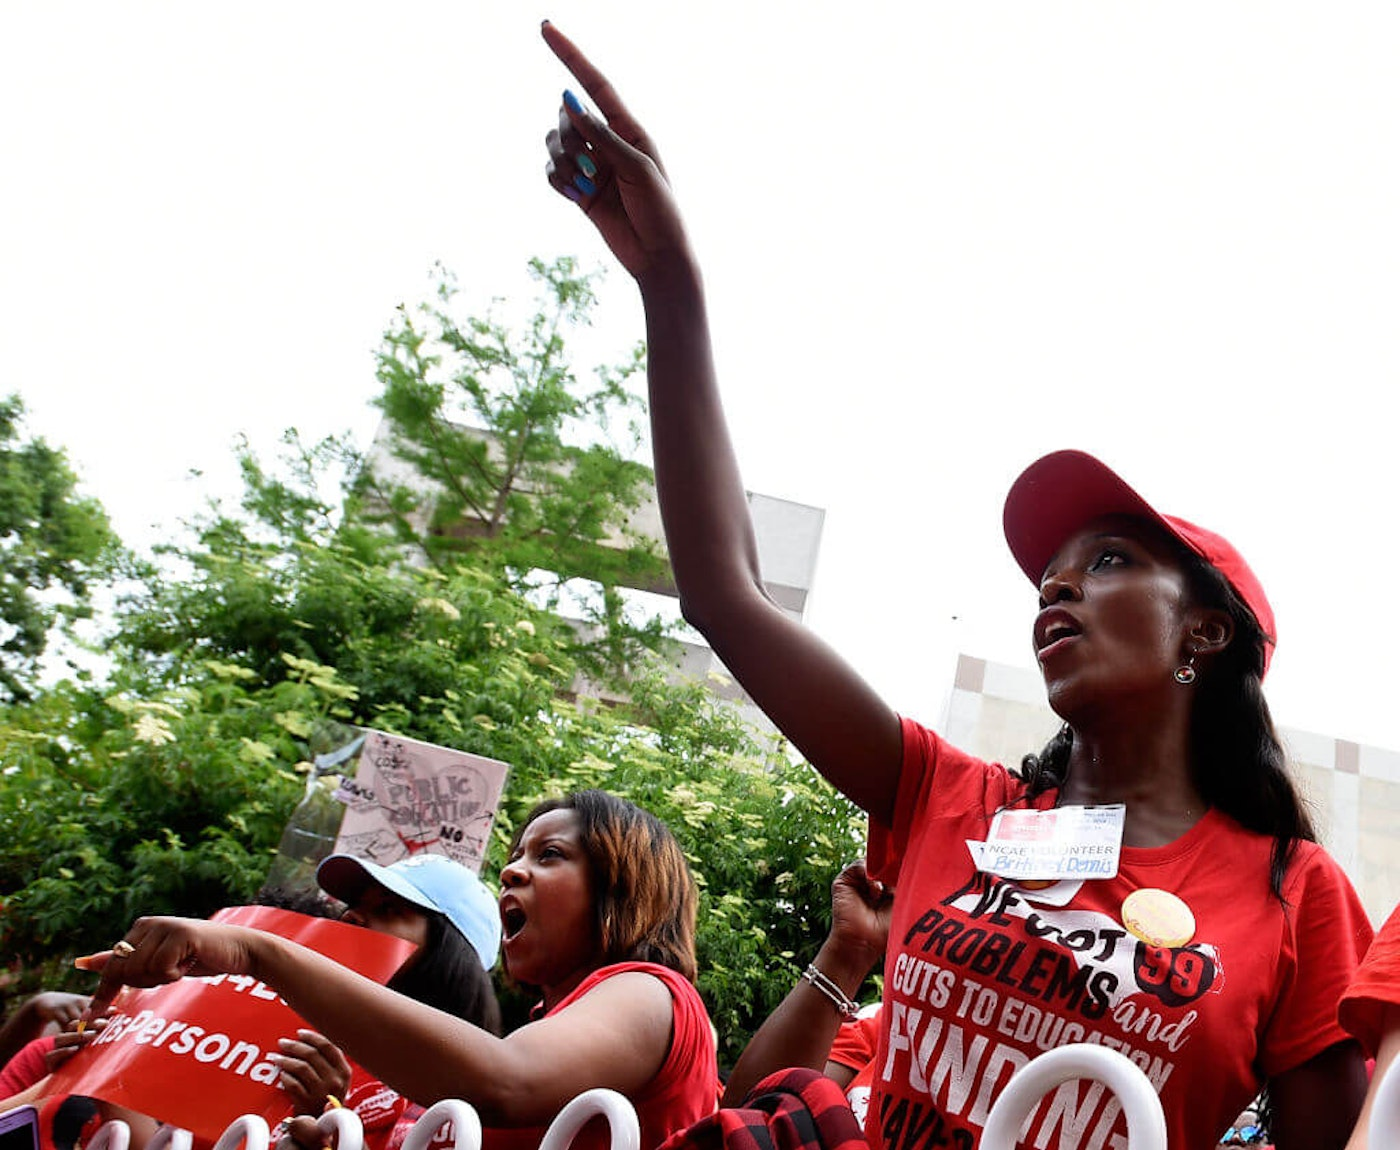 Crowds cheer during the Rally for Respect outside the North Carolina Legislative Building on May 16, 2018 in Raleigh, North Carolina. Several North Carolina counties closed schools to allow teachers to march on the opening day of the General Assembly.  (Photo by Sara D. Davis/Getty Images)